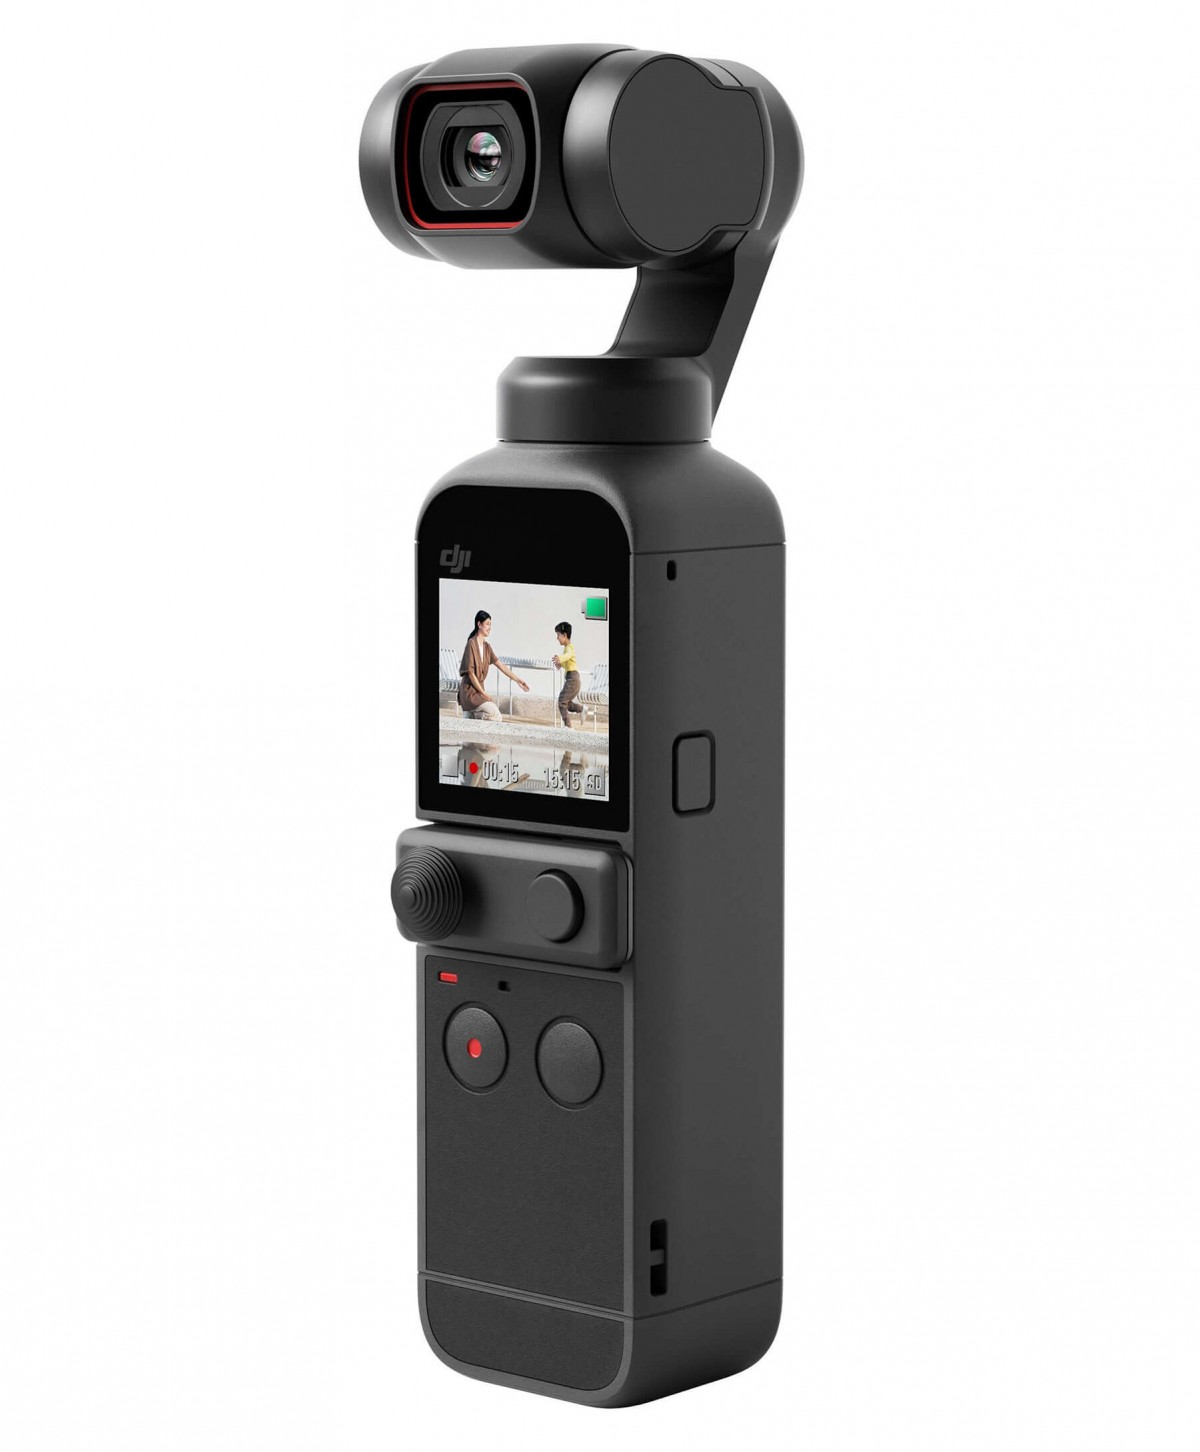 New DJI Pocket 2 brings updated sensor, optics, and audio